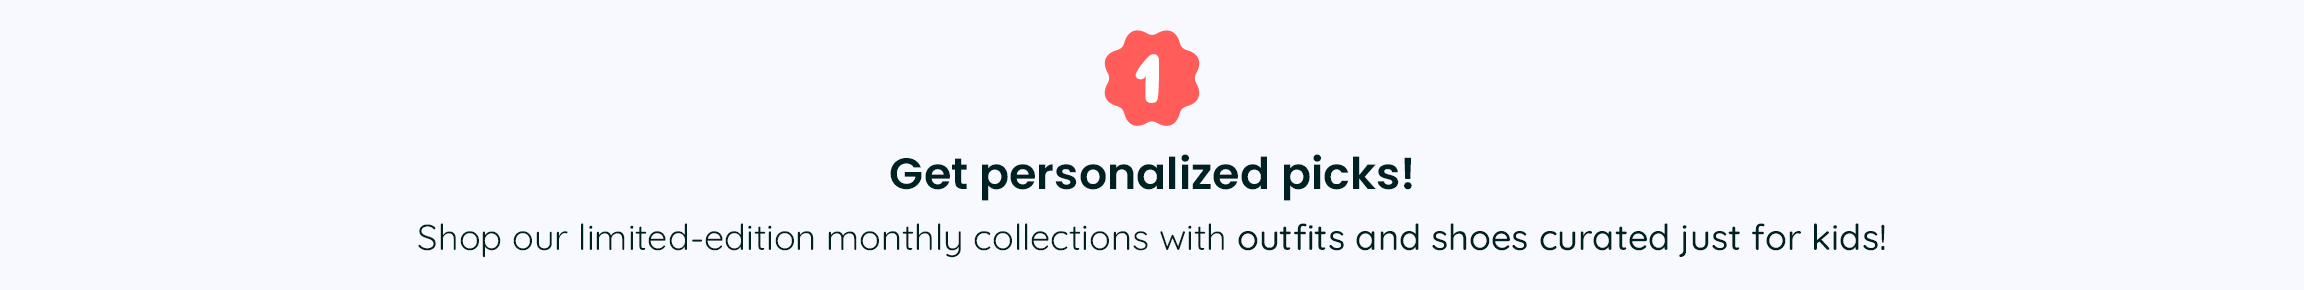 1. Get personalized picks! - Shop our limited-edition monthly collections with outfits and shoes curated just for kids!